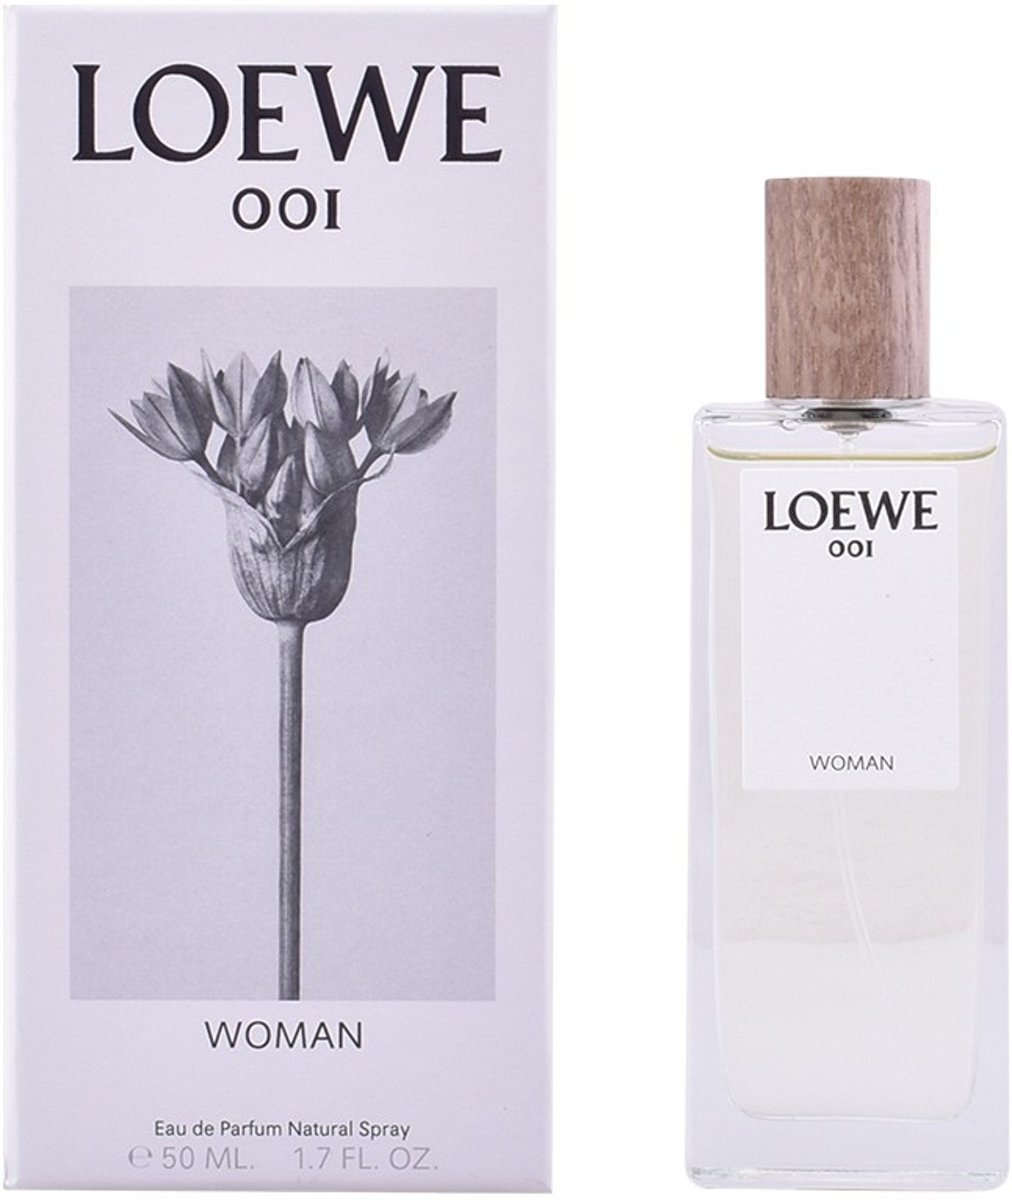 MULTI BUNDEL 2 stuks LOEWE 001 WOMAN Eau de Perfume Spray 50 ml